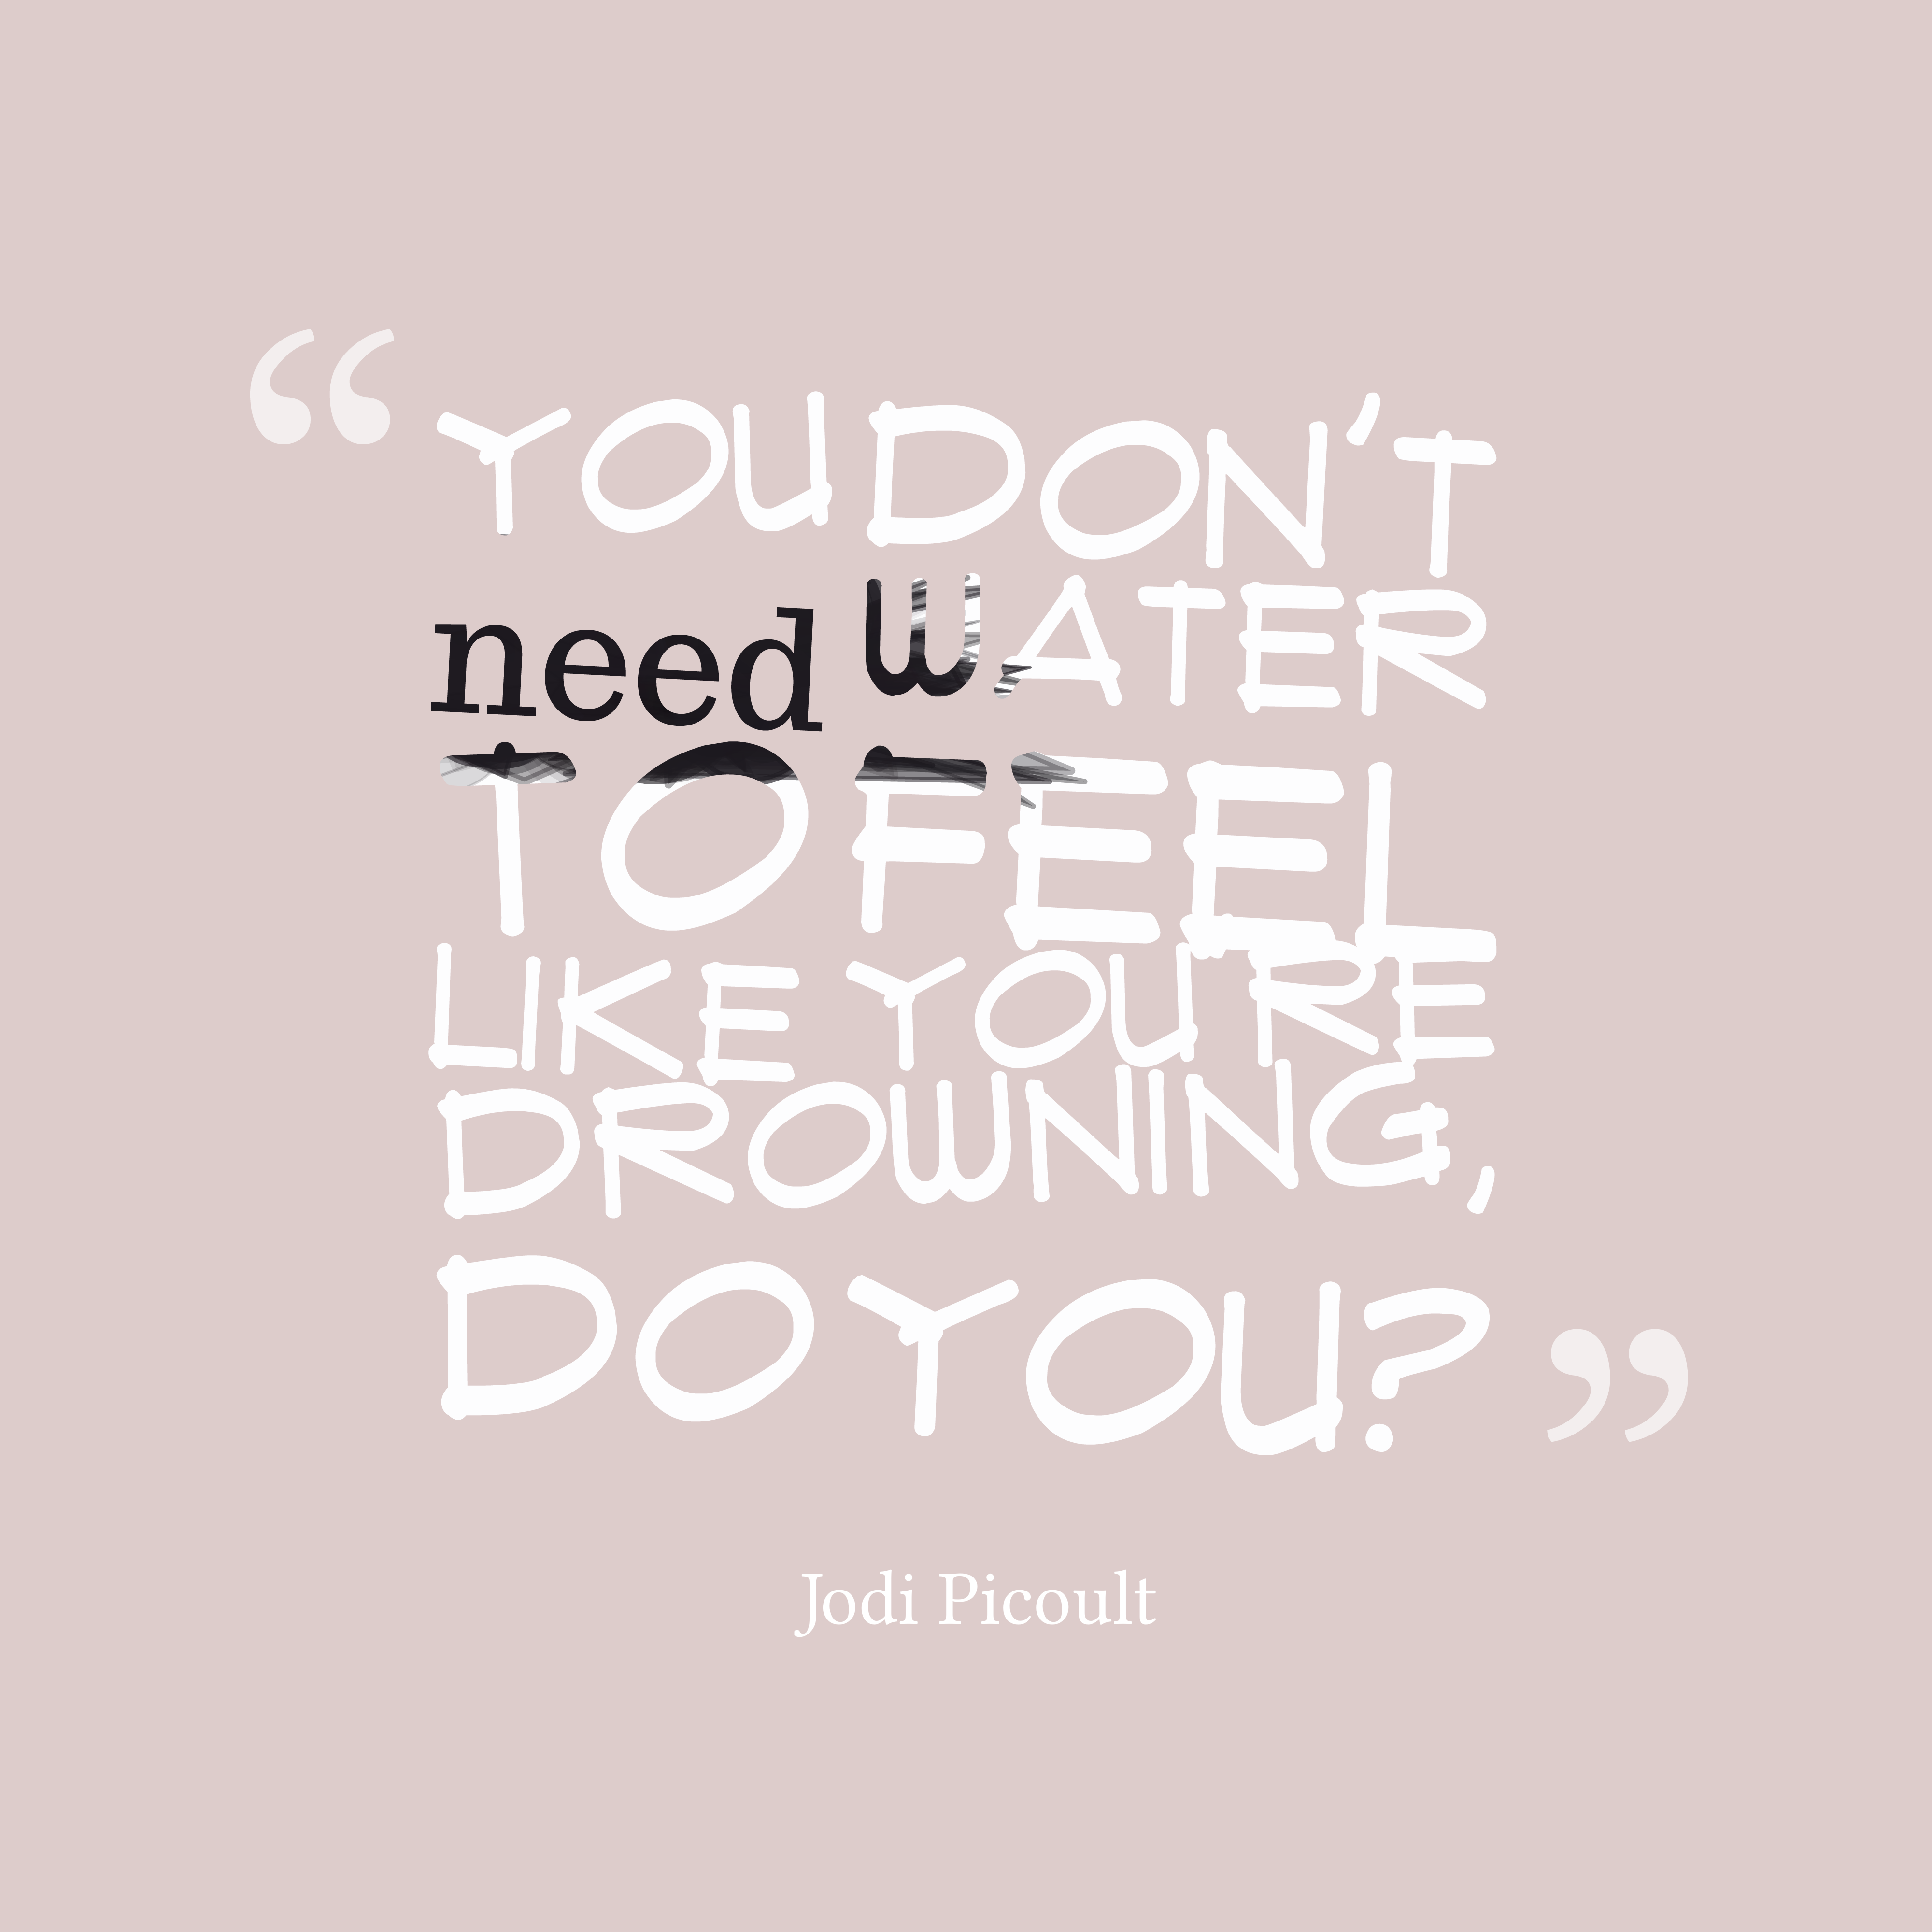 Quotes About Water: Picture » Jodi Picoult Quote About Water